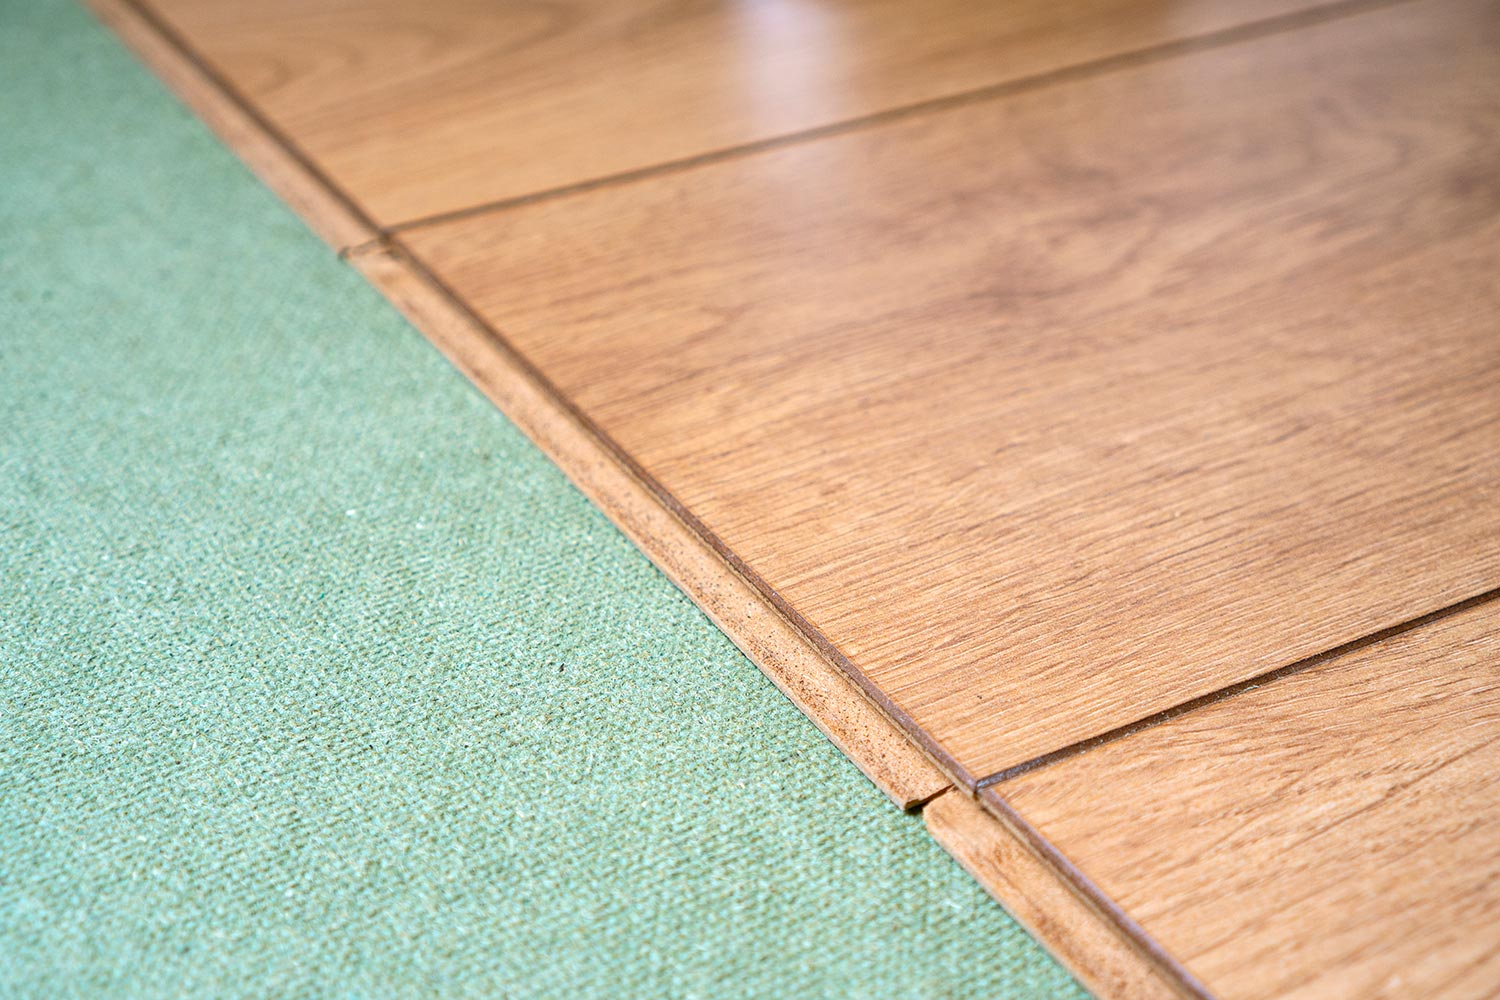 How To Insulate Laminate Flooring 3, What Happens If You Don T Use Underlayment Under Laminate Flooring